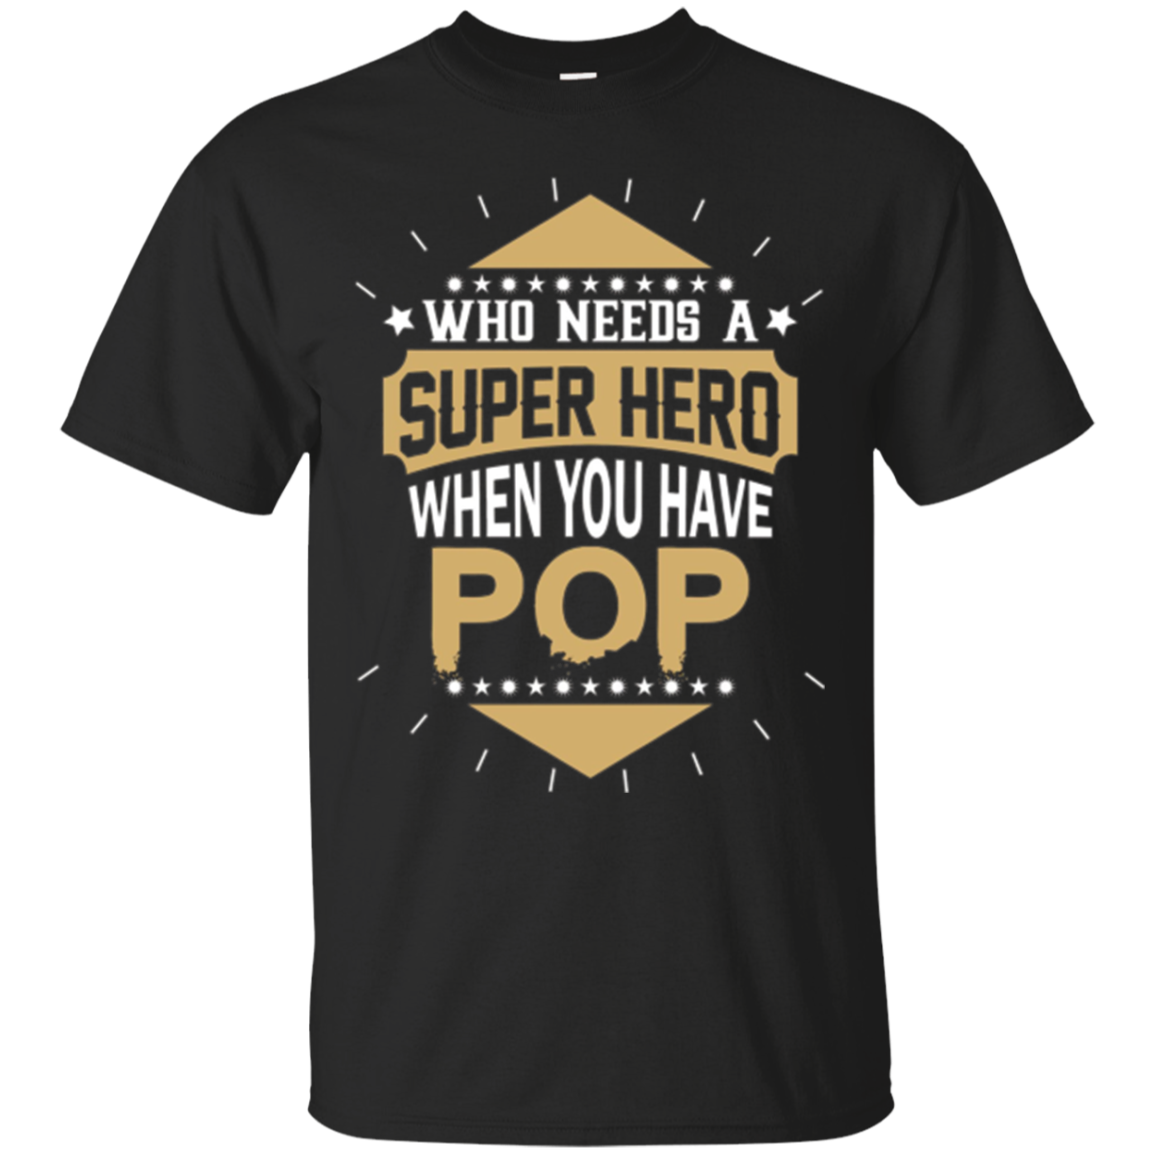 Who needs a Super Hero when you have POP T Shirt